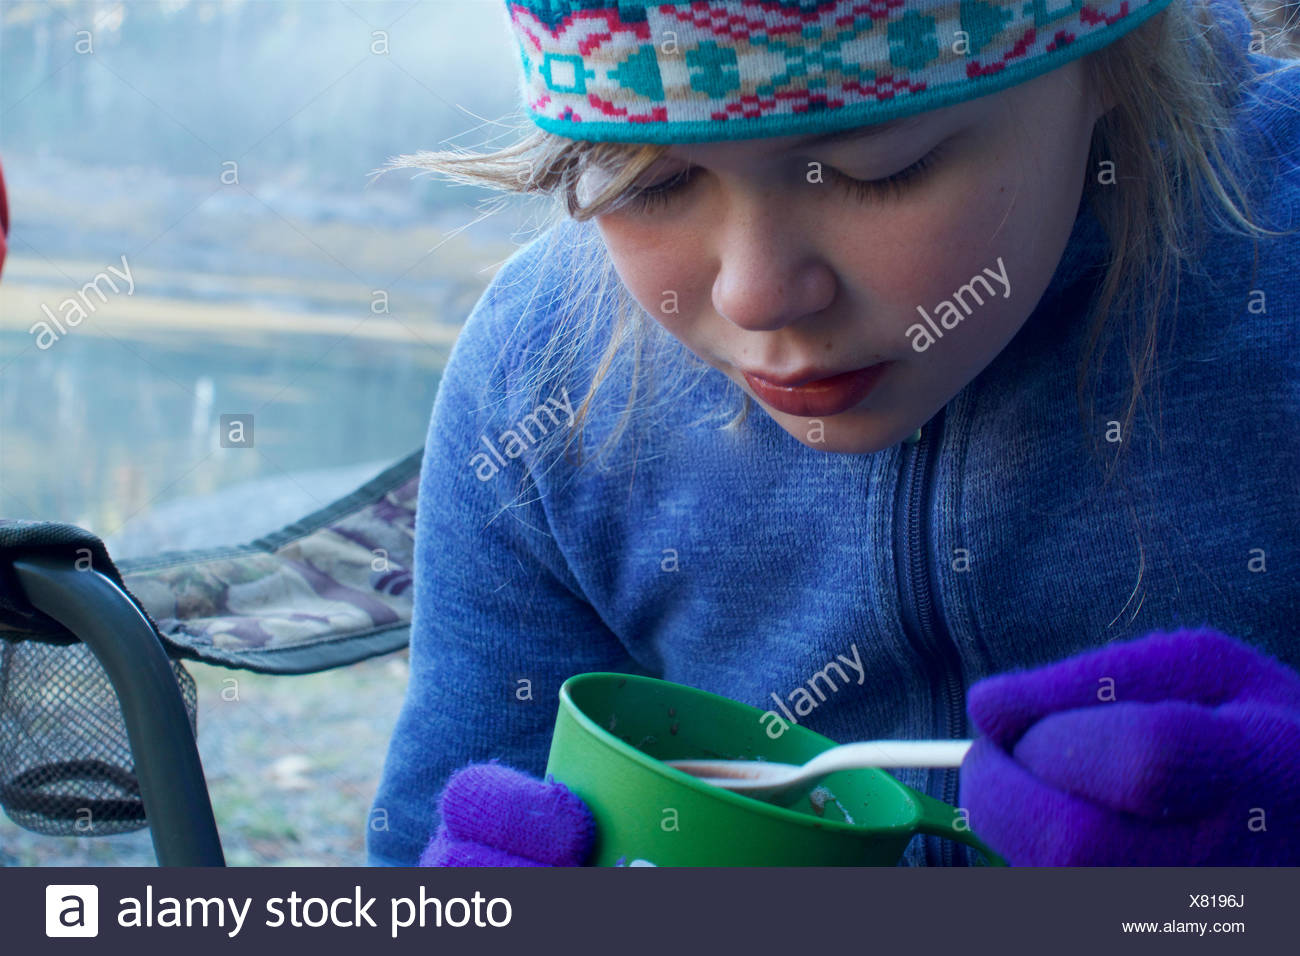 Camper enjoying her hot chocolate on a chilly fall morning in Acadia. - Stock Image